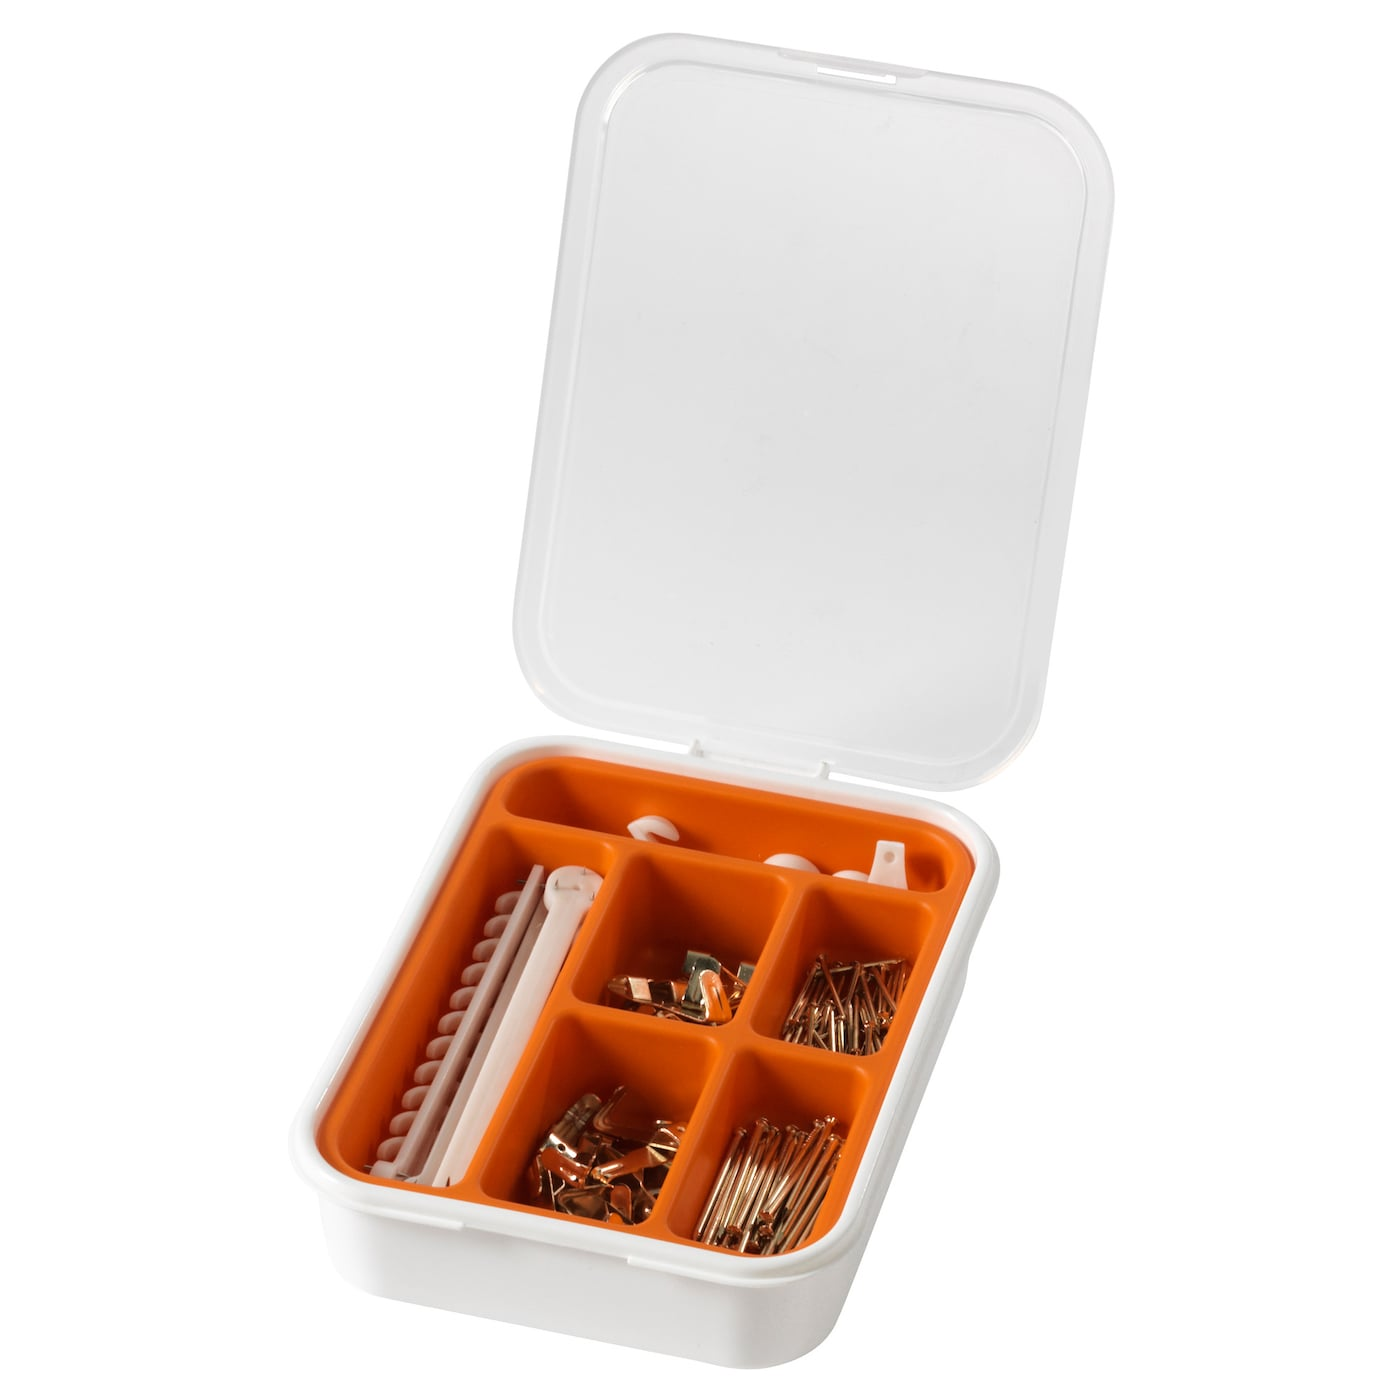 IKEA FIXA 116-piece picture hook set Can be stacked with other boxes in the FIXA series.